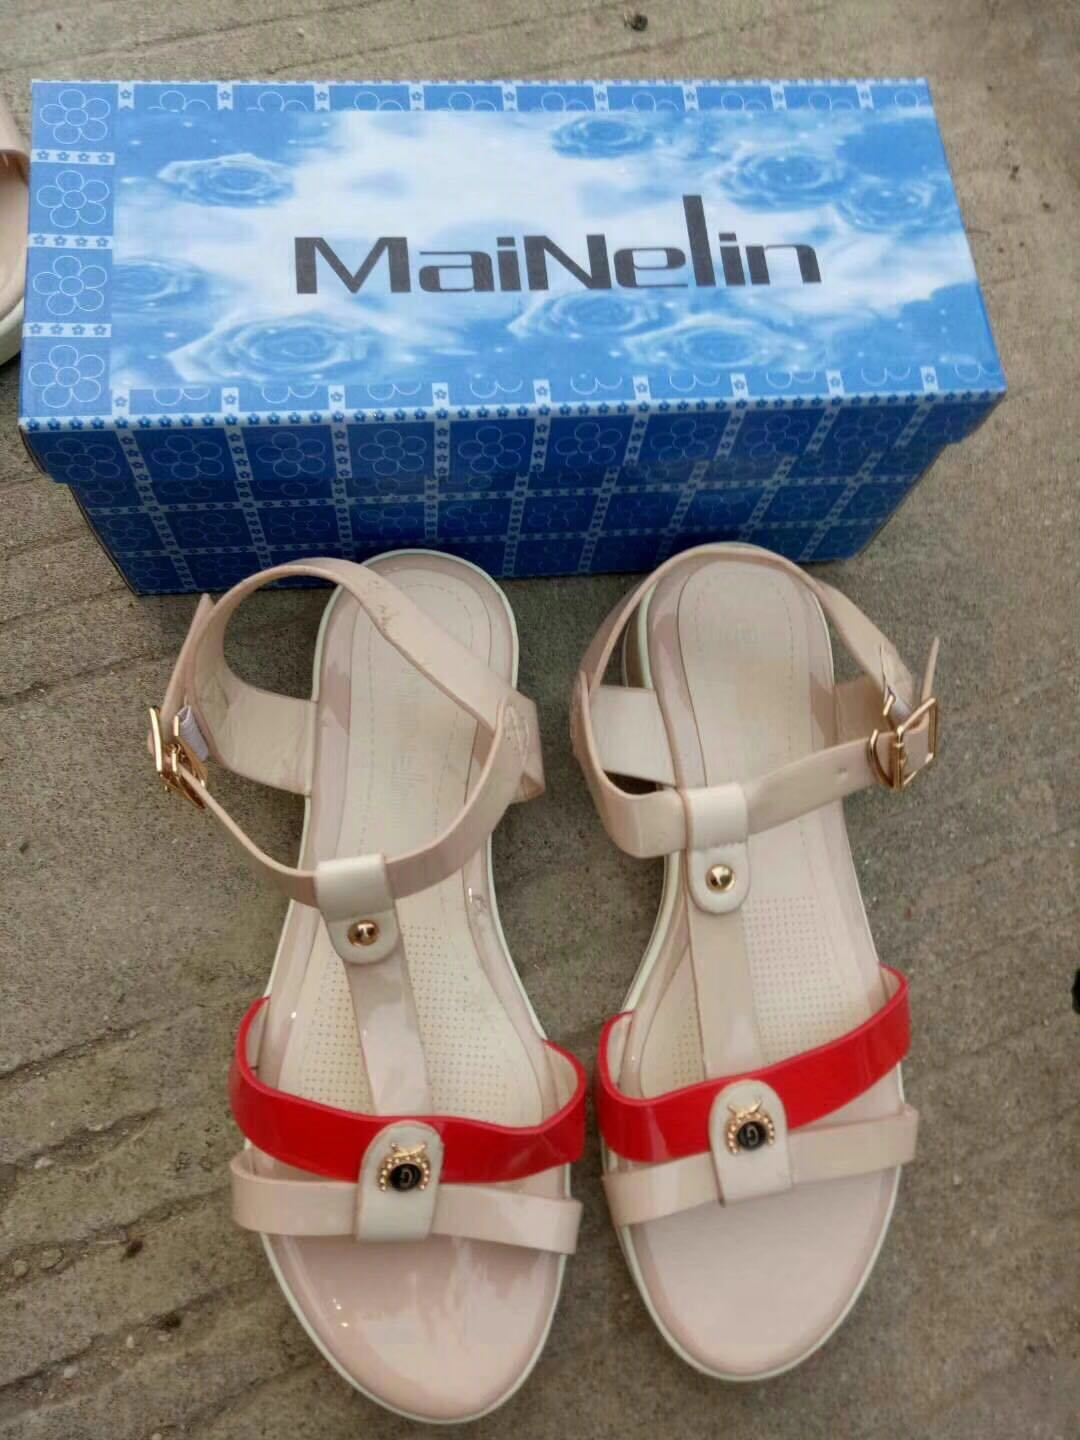 4057815dfde56 China High Top Quality for Women Ladies Sandals